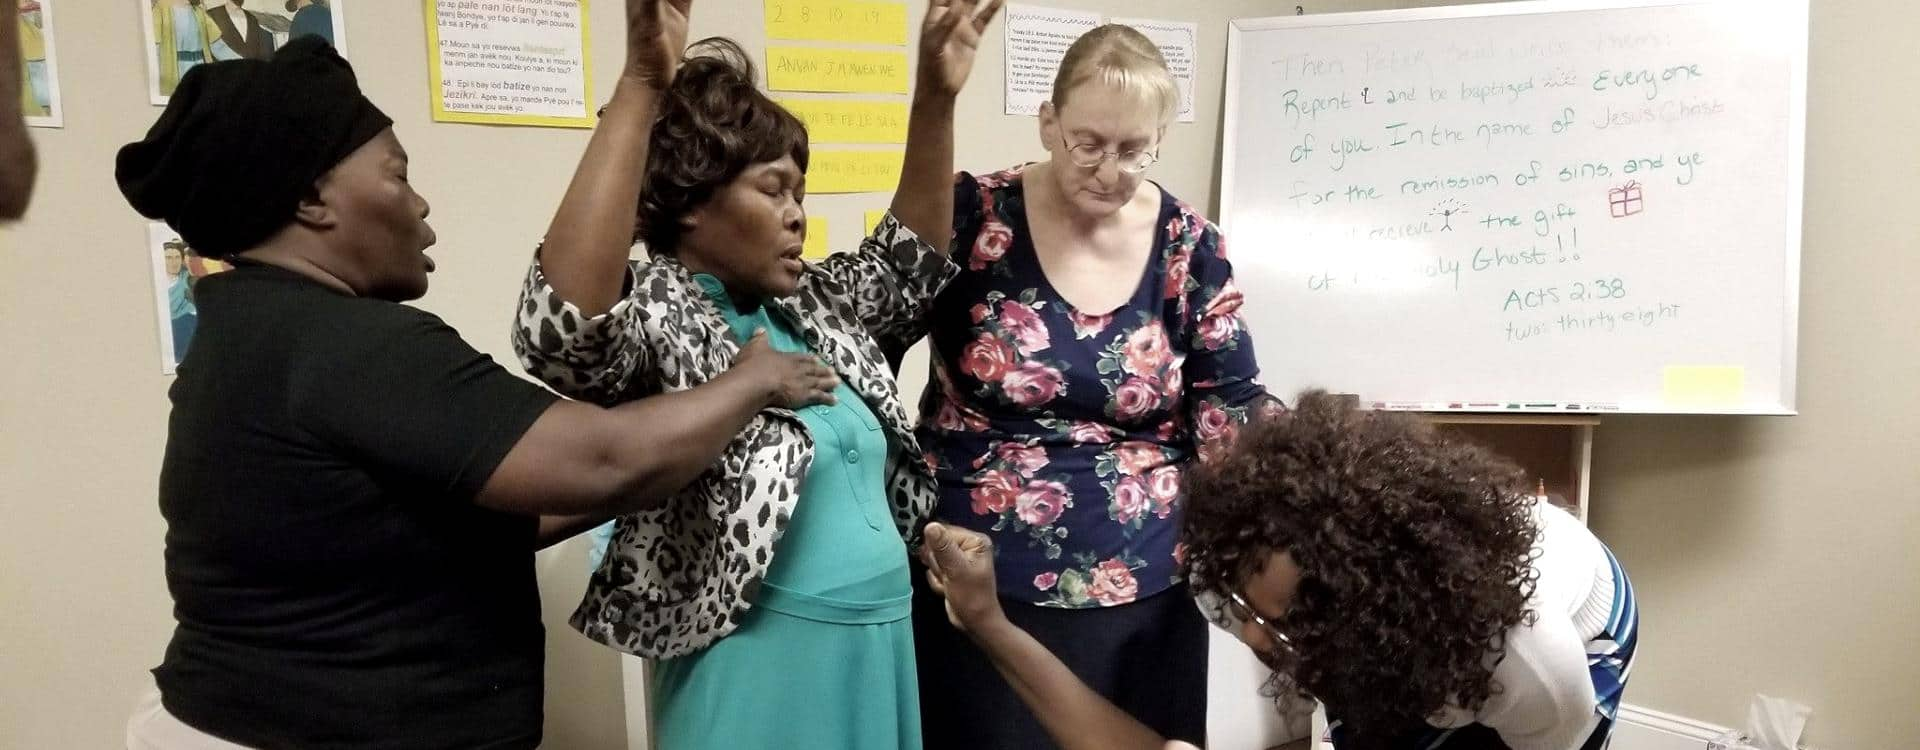 multi-cultural class worshipping